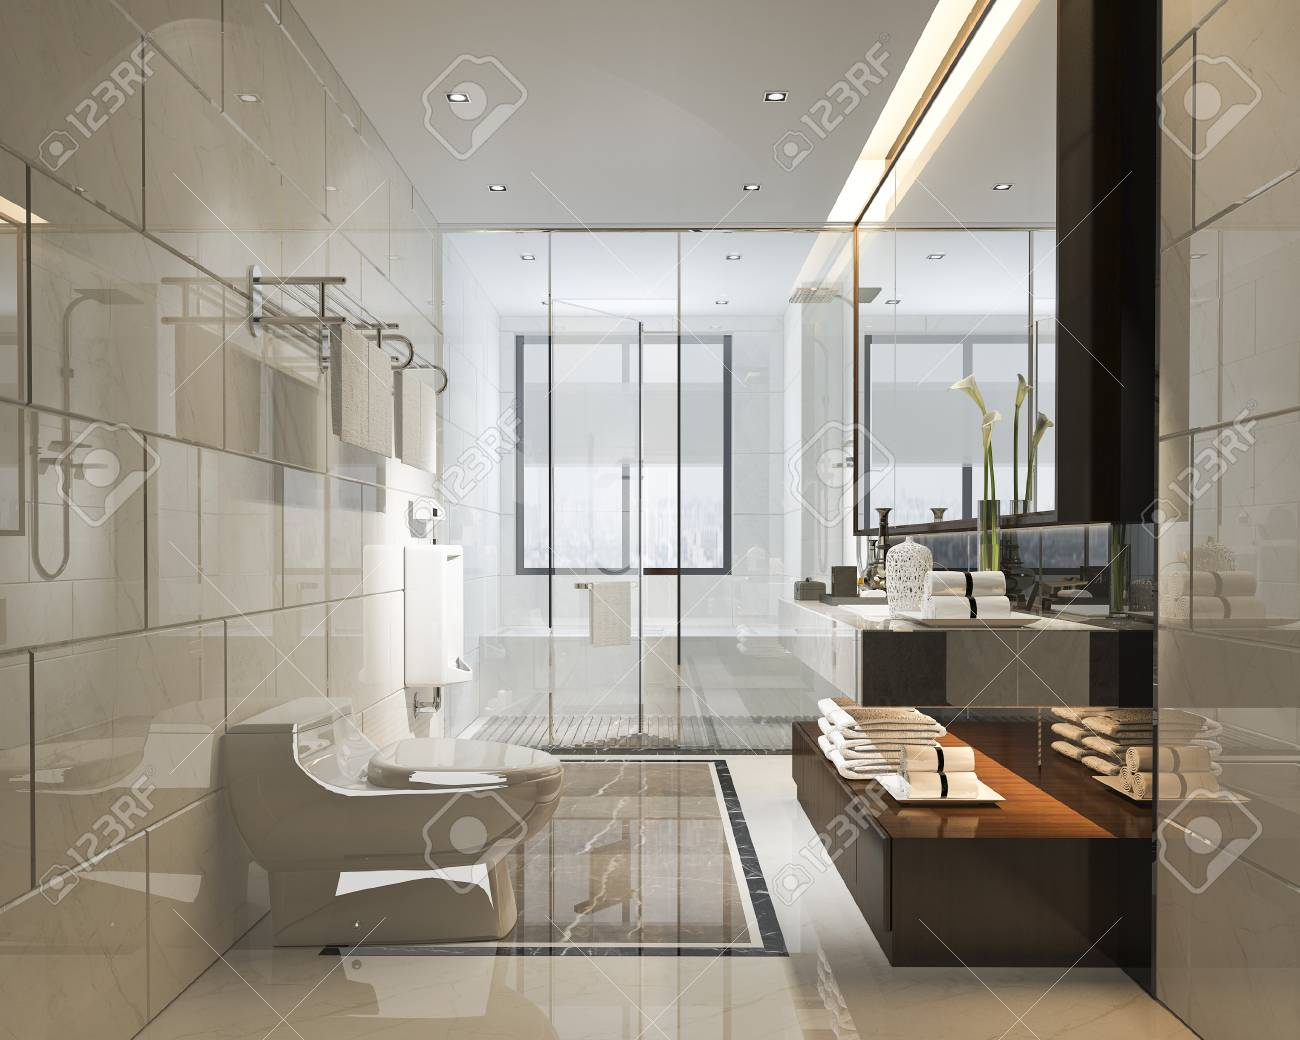 3d Rendering Luxury Modern Design Bathroom And Toilet Stock Photo Picture And Royalty Free Image Image 101828673